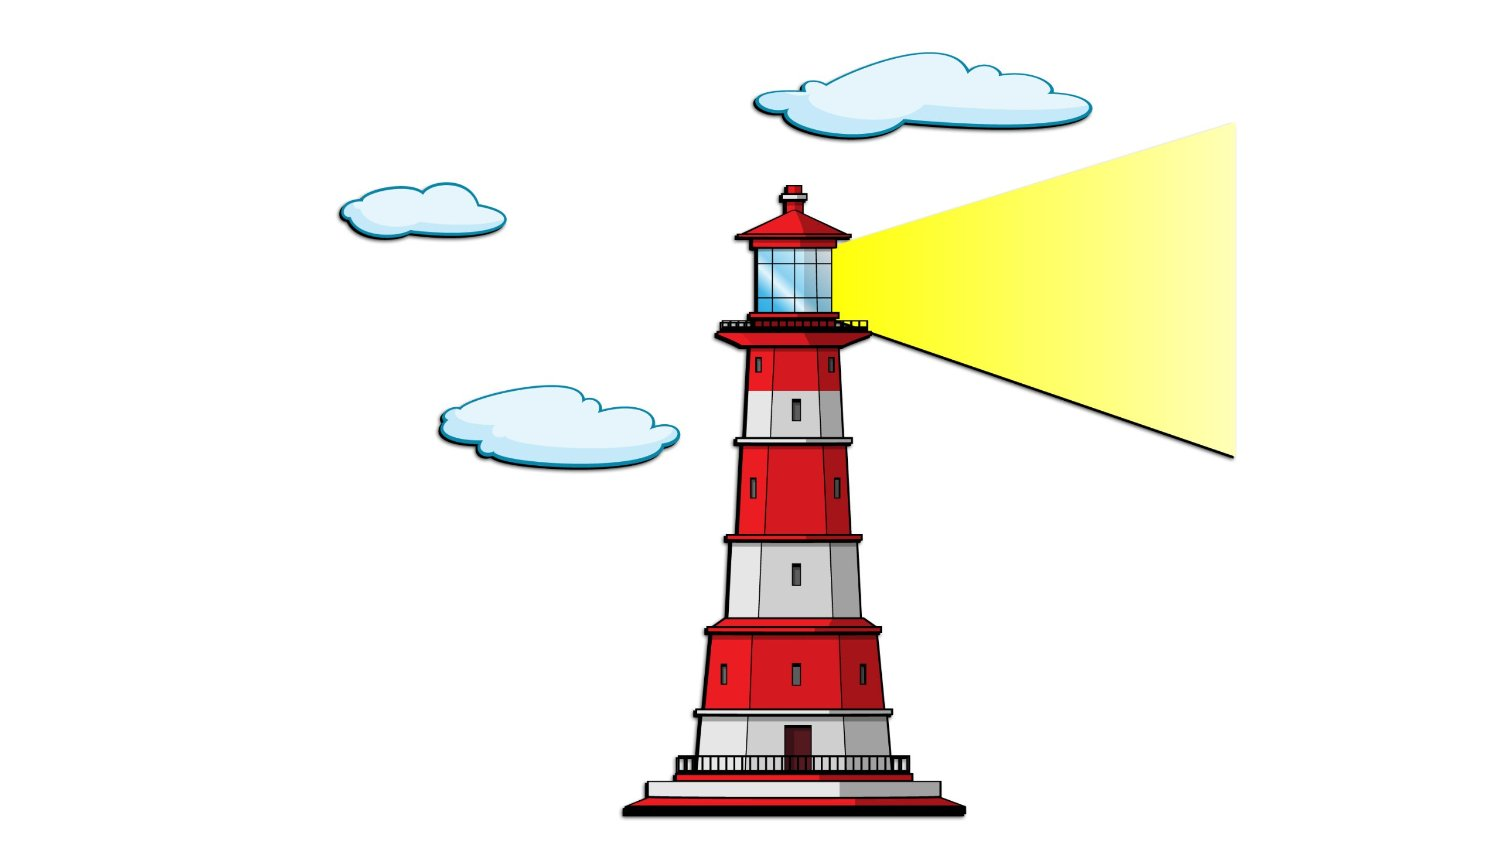 Typical Cartoon Lighthouse Download Roya-Typical Cartoon Lighthouse Download Royalty Free Vector Eps-3